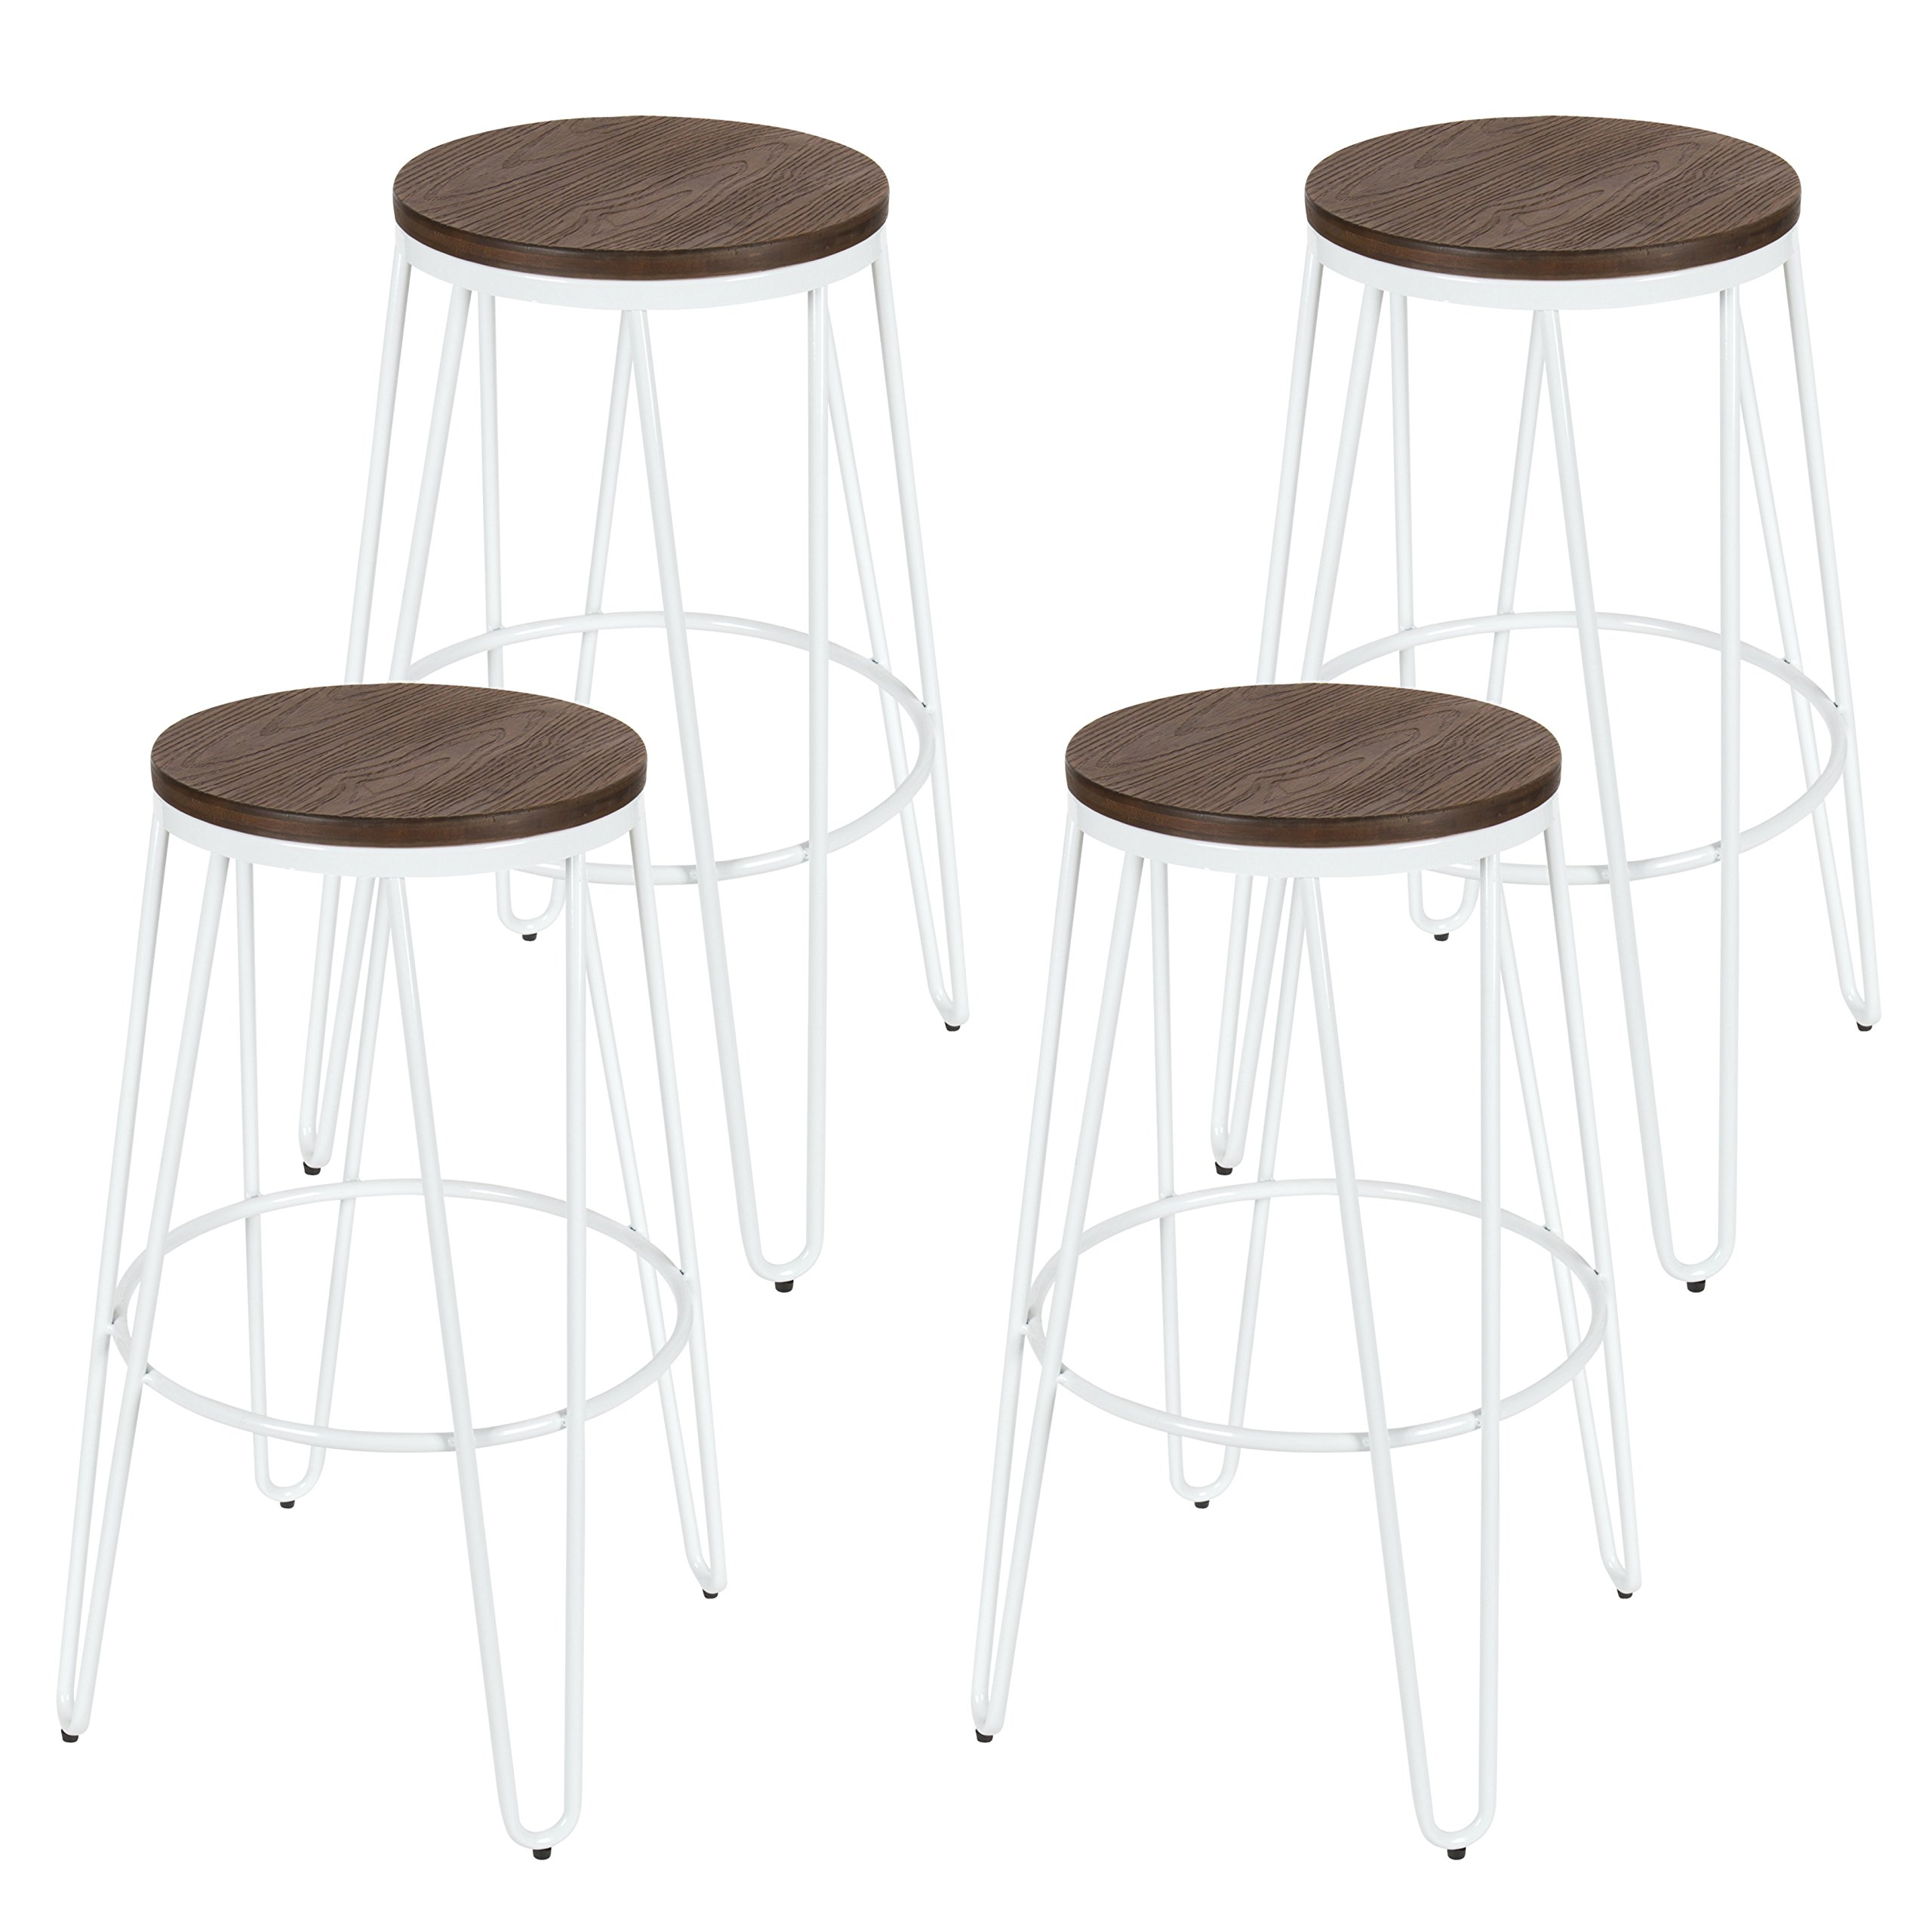 Details About Kate And Laurel Tully Backless Modern Wood And Metal 30 Bar Stools Set Of 4